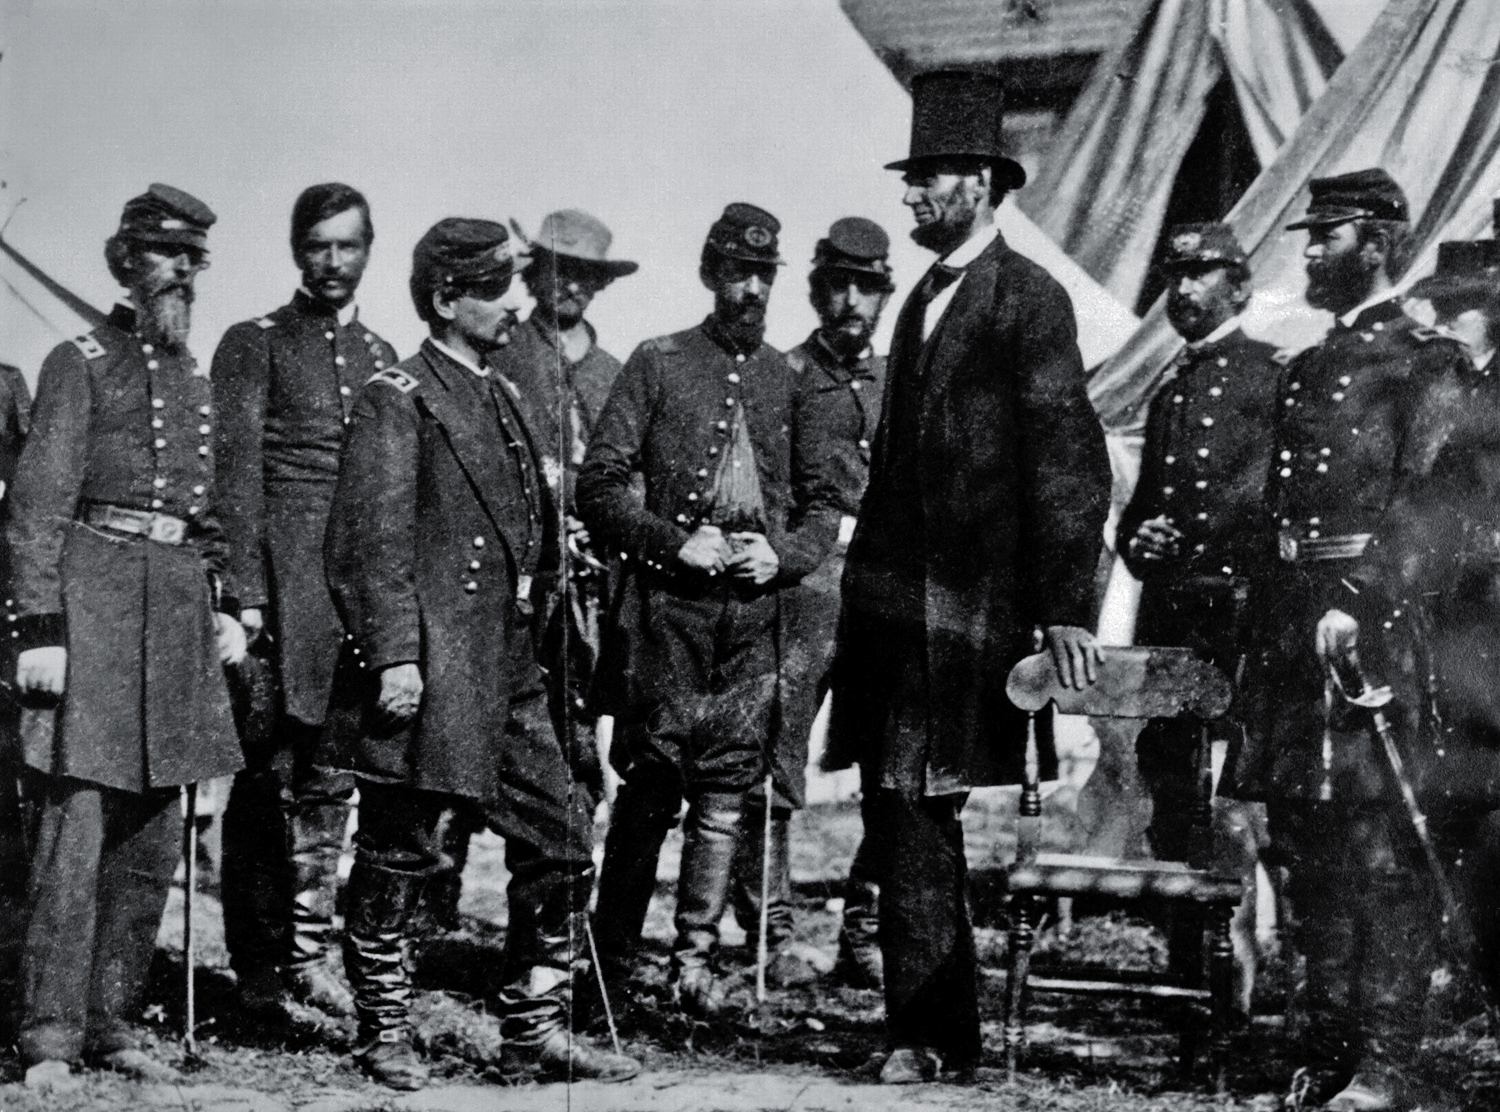 Abraham Lincolns Role in the Civil War - Term Paper Example